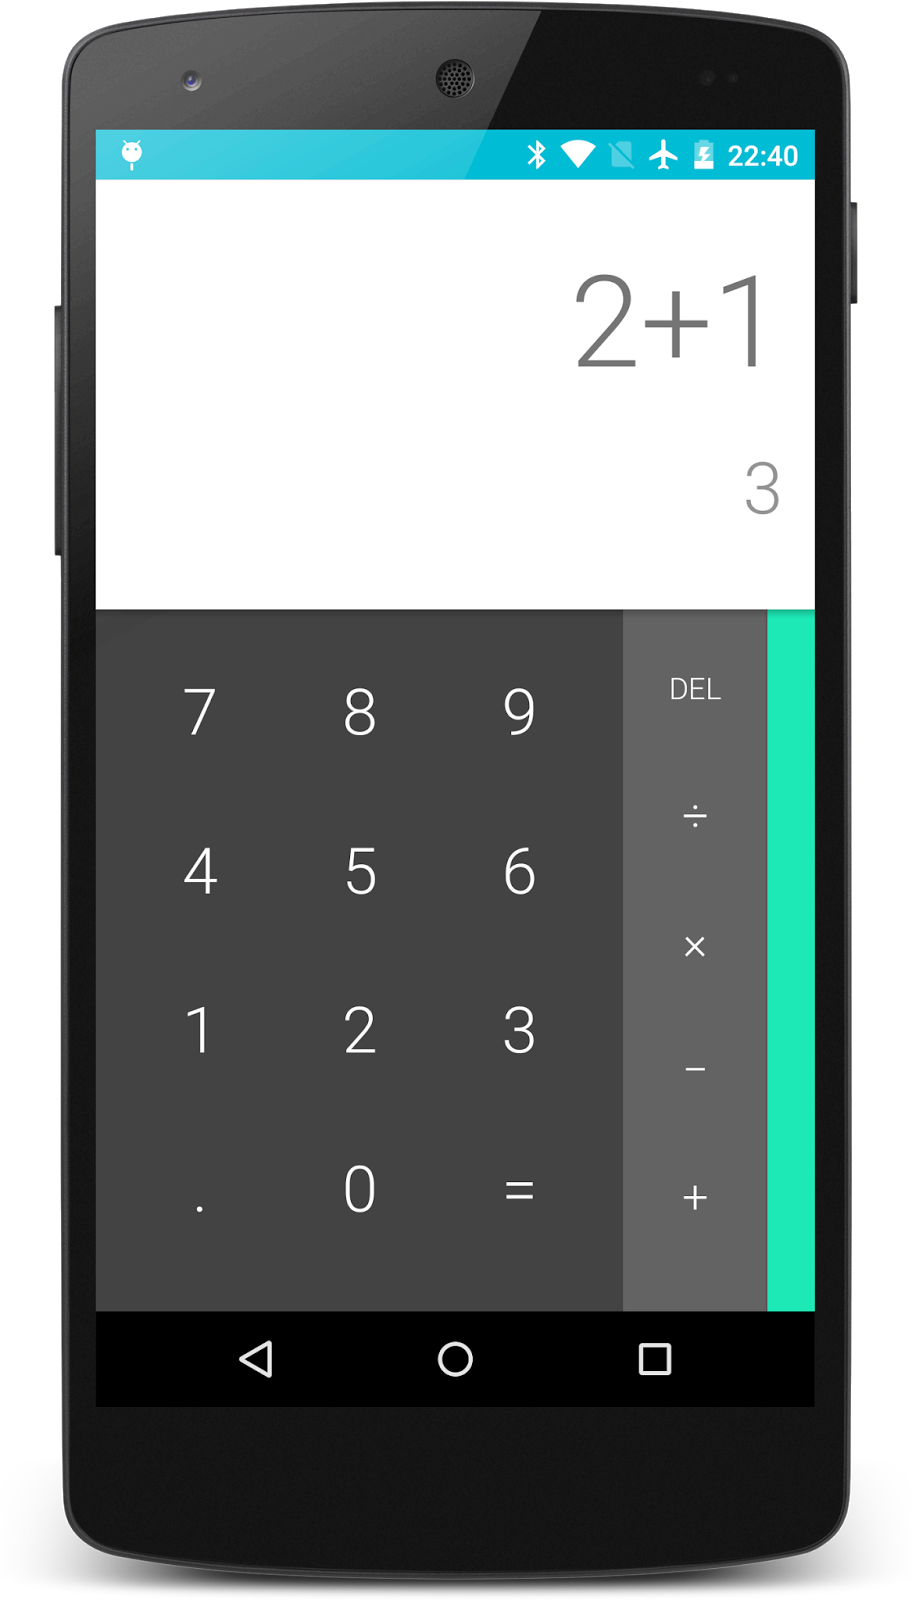 Phone Calculator For Android Phone diego torres milanos blog android obtaining beautiful detect the device and orientation take screenshot frame it with corresponding artwork will add drop sha